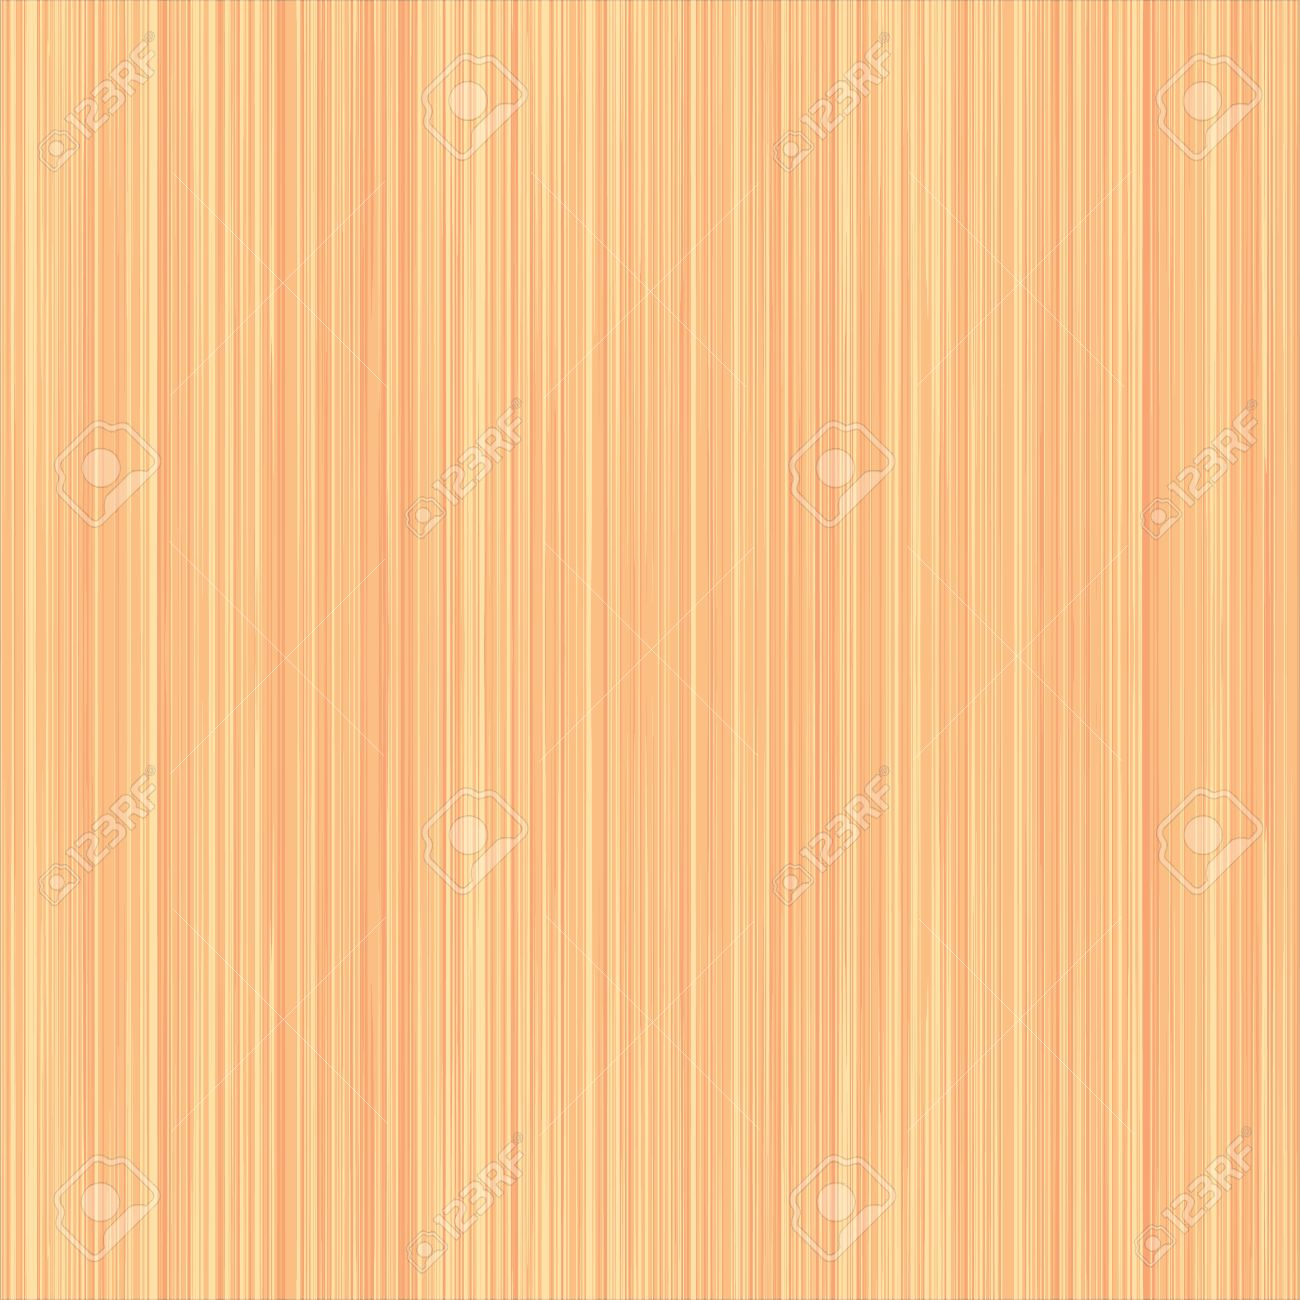 Wood Texture Vector Background. Wooden Table Top. Royalty Free ...